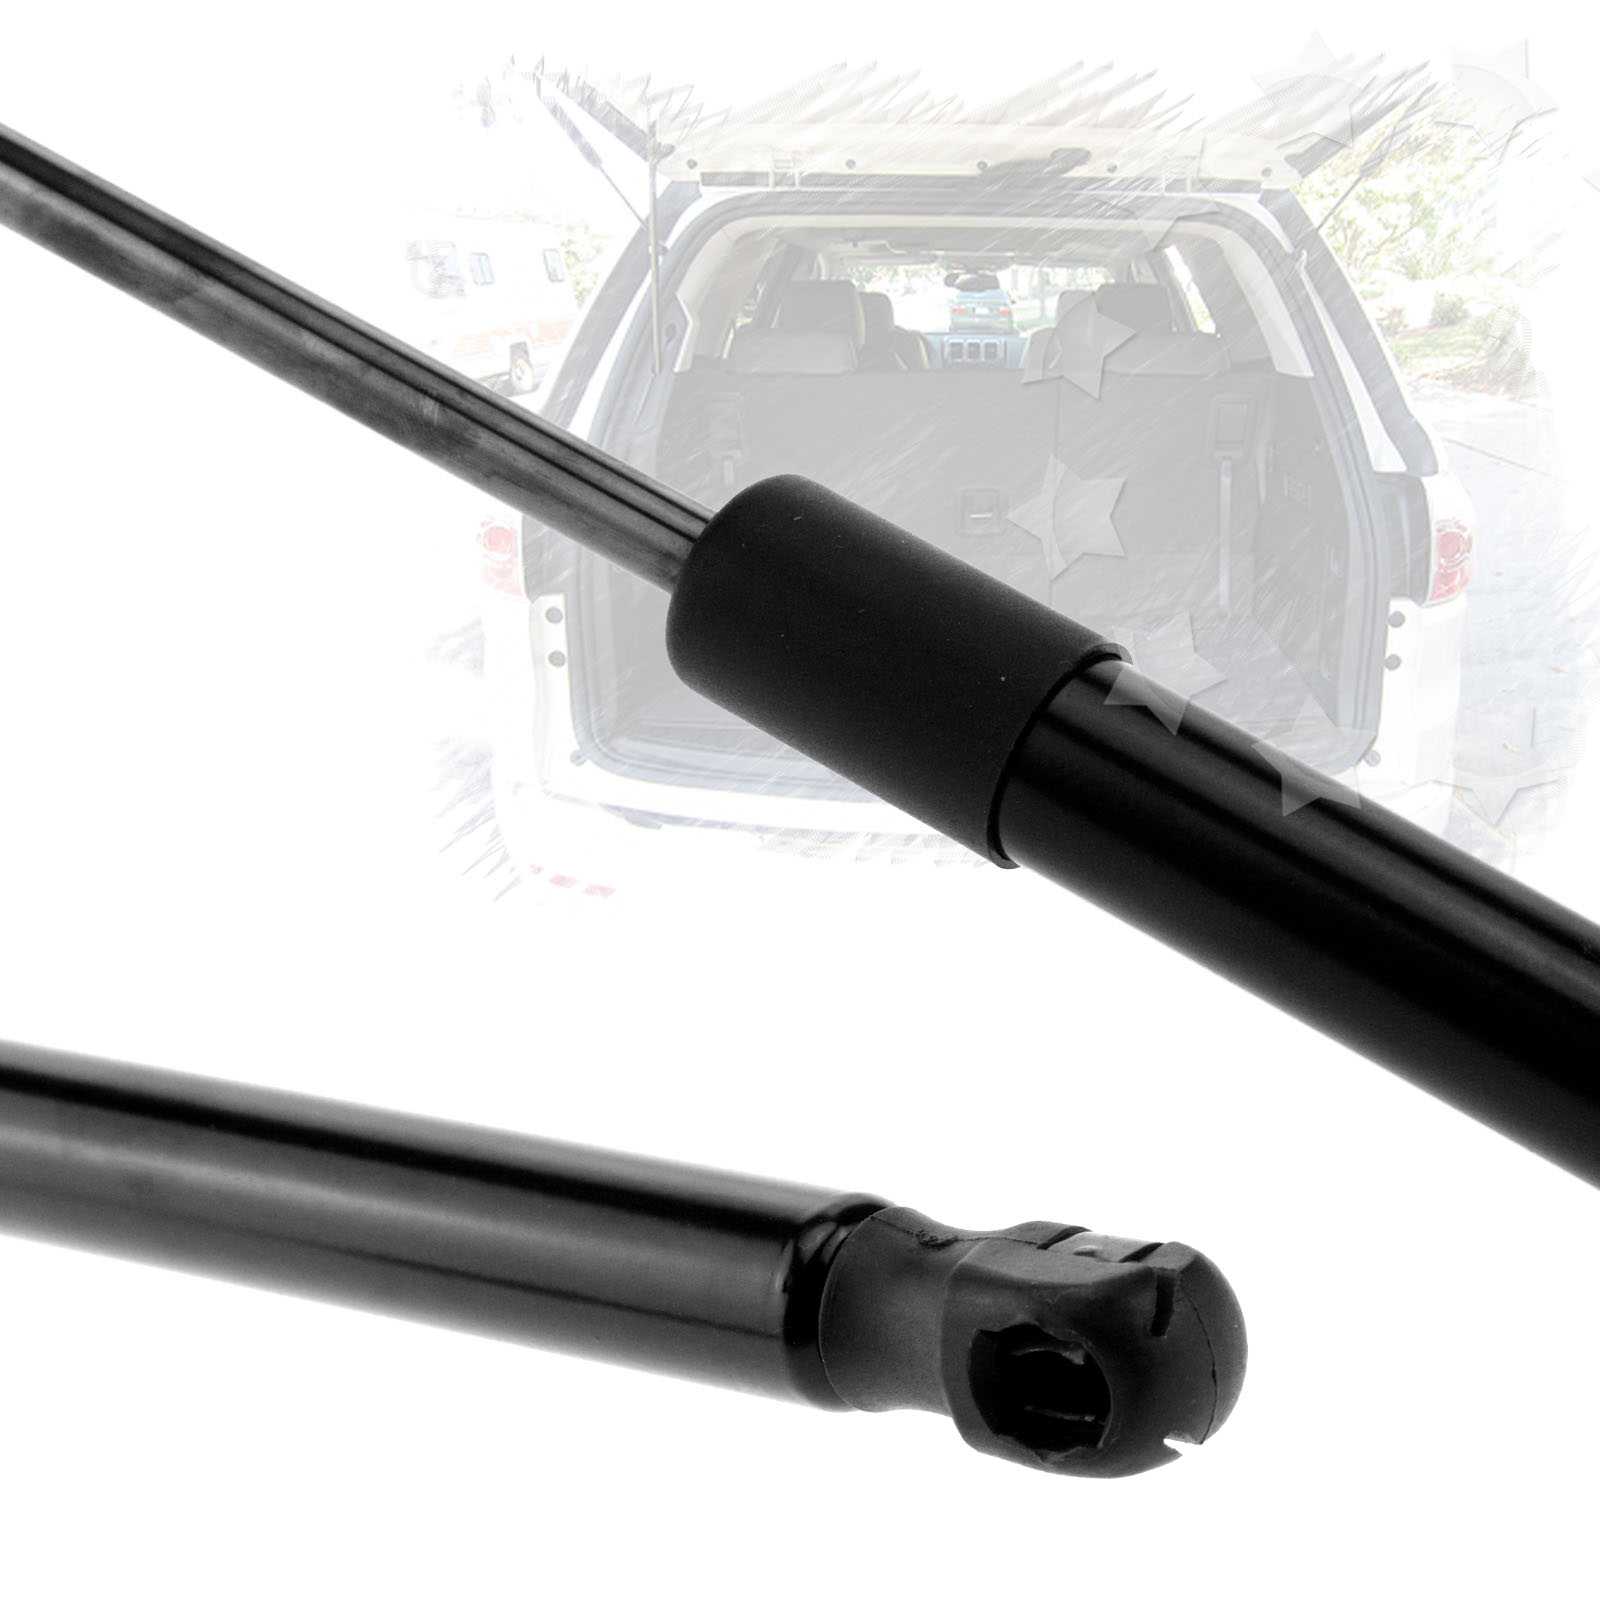 Mazda 6 2002 2008 Estate Tailgate Boot Gas Strut: 2pcs Tailgate Boot Struts Gas Springs For Ford Focus 05-10 Hatchback MK2 05-10